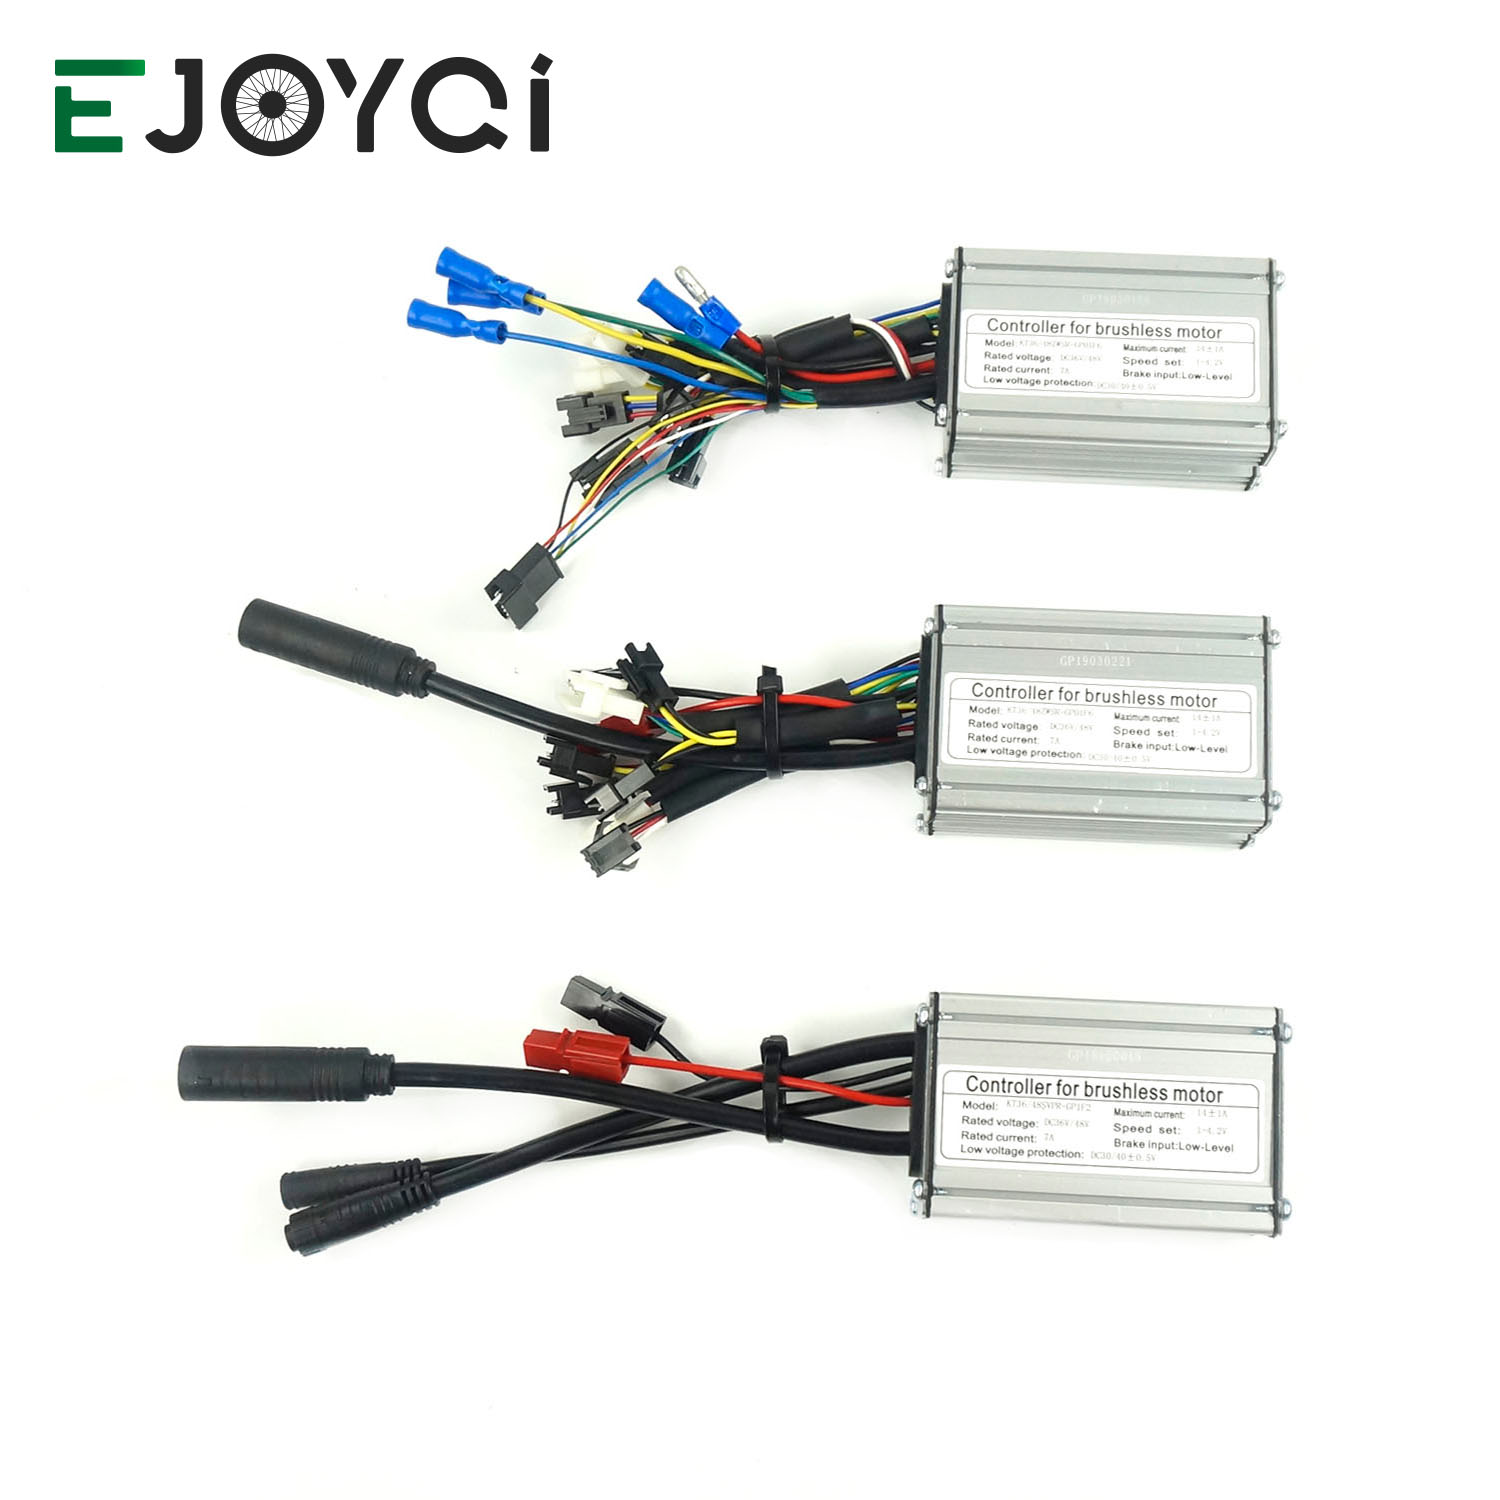 EJOYQI KT 36V 48V 14A 250W Ebike Controller 6 Mosfets For Electric Bicycle Motor Electric Bike Brushless Controller Waterproof